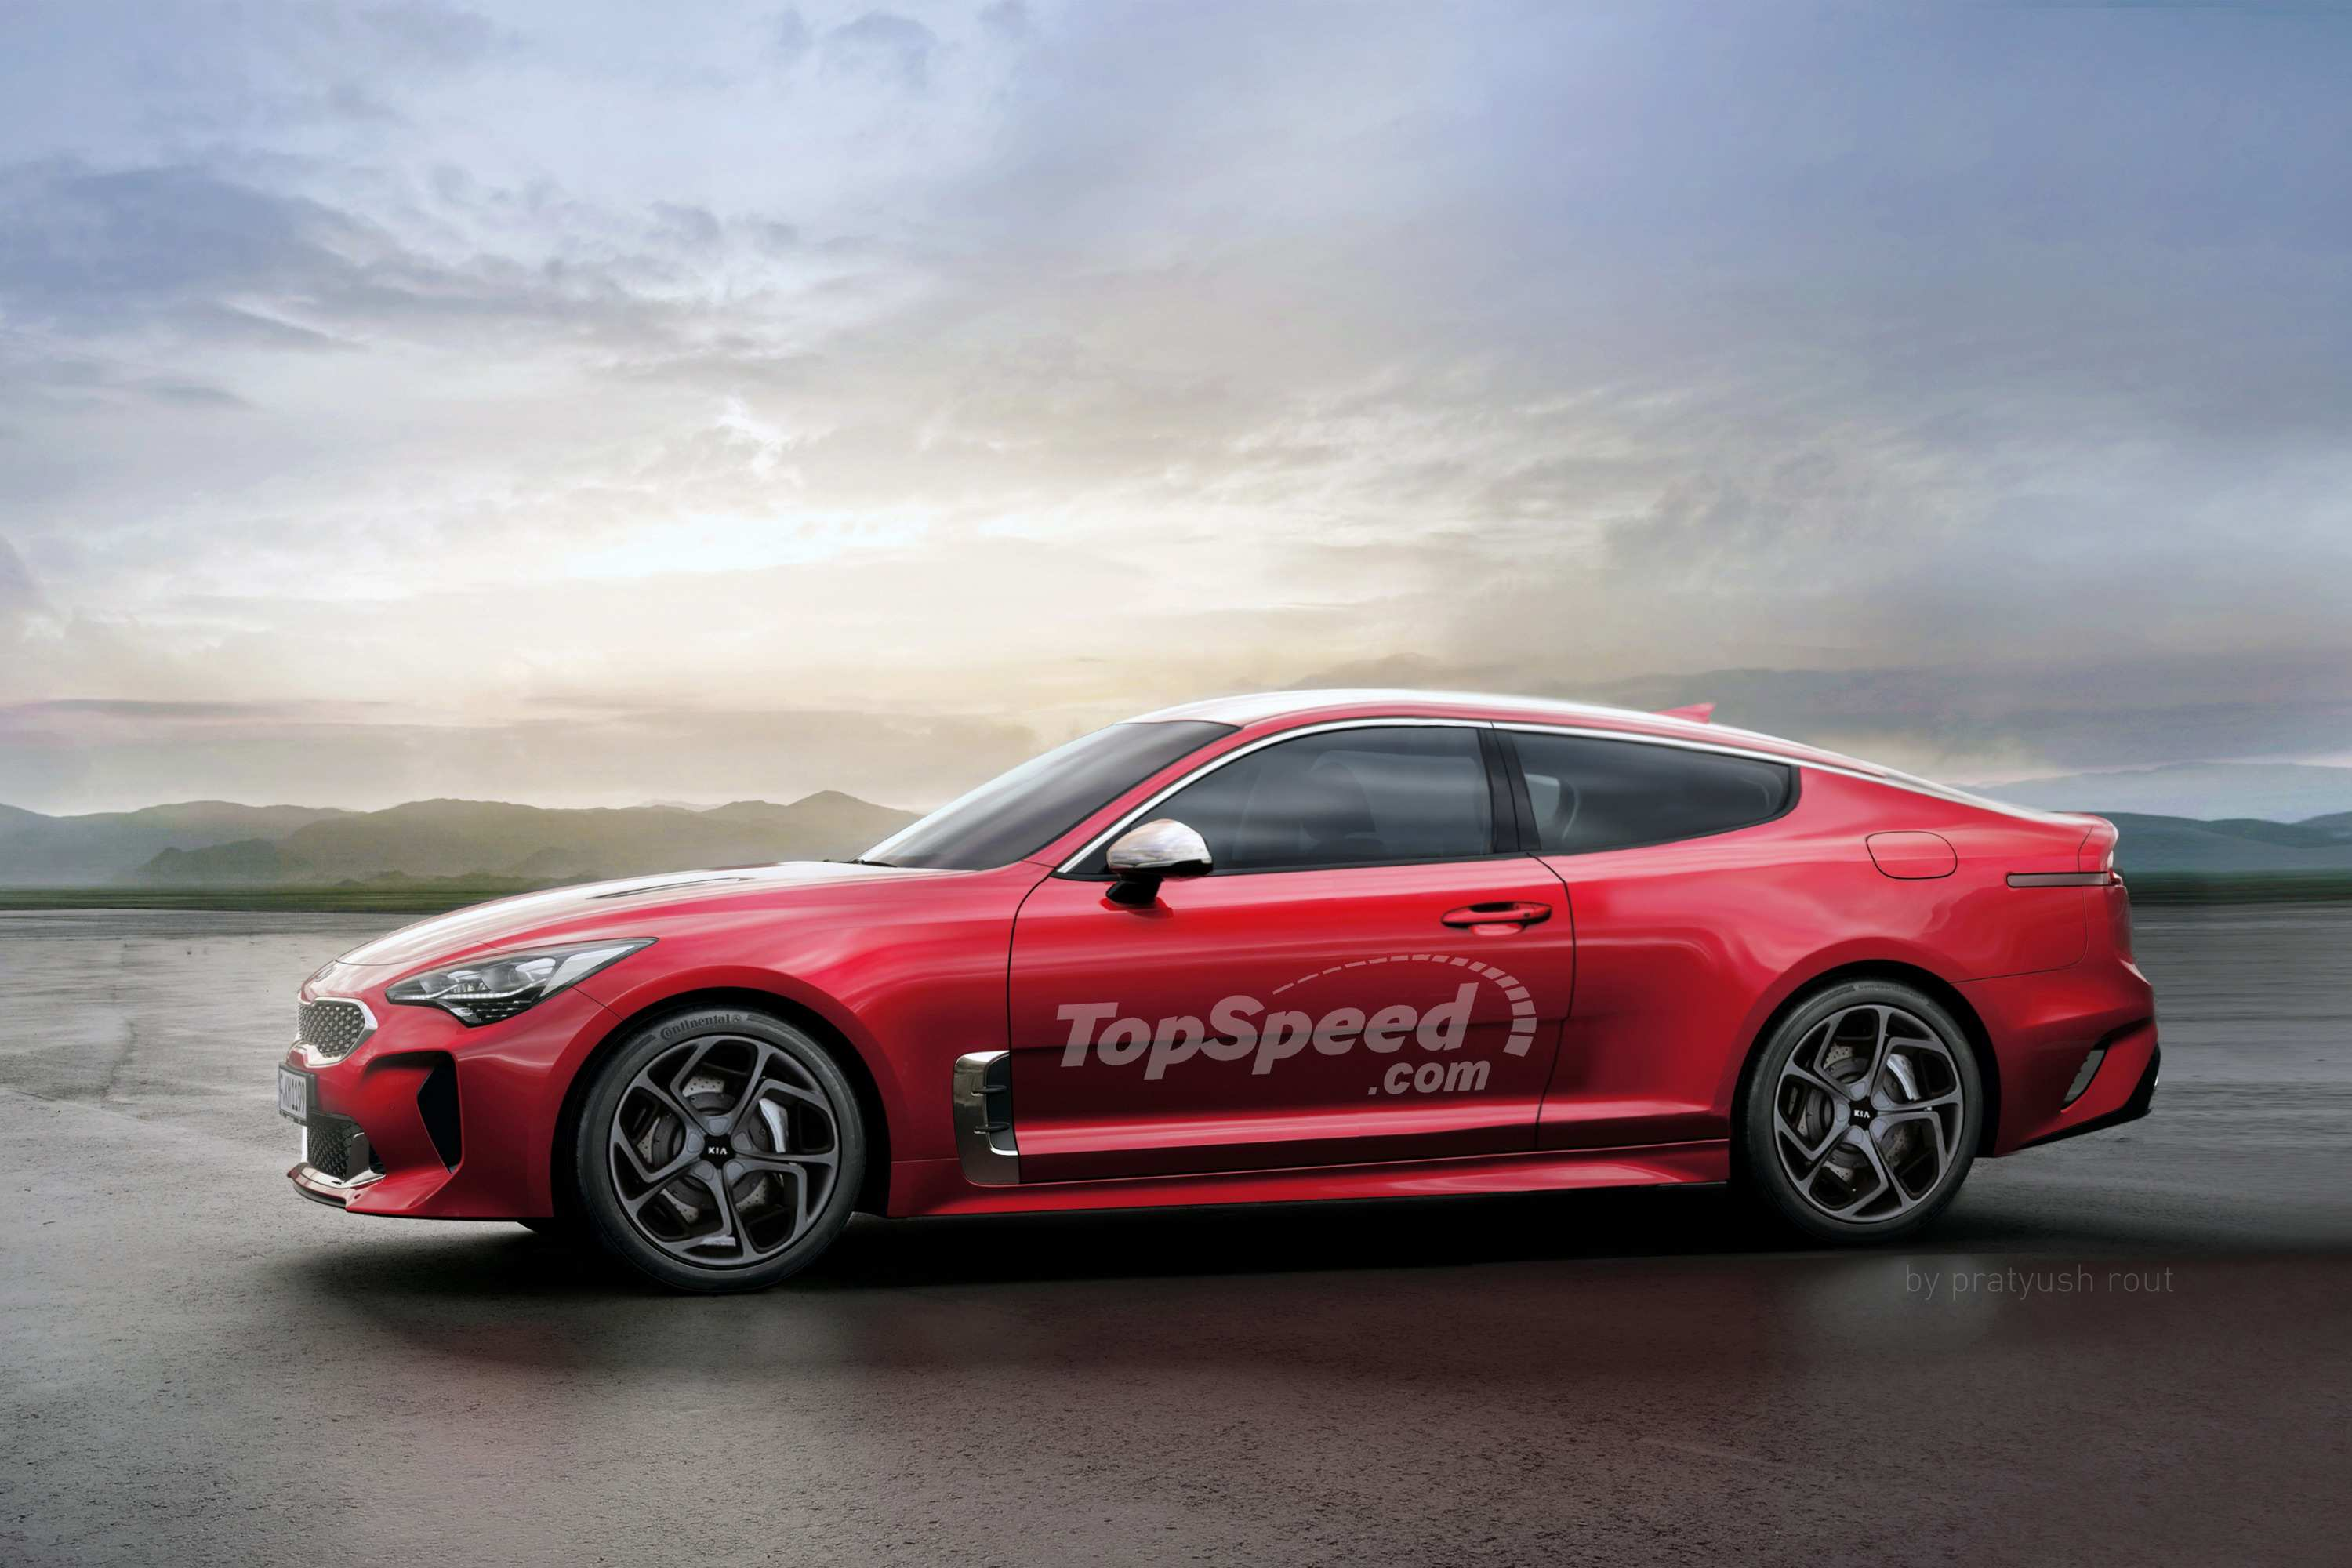 44 Concept of Kia Stinger 2020 Update Engine by Kia Stinger 2020 Update